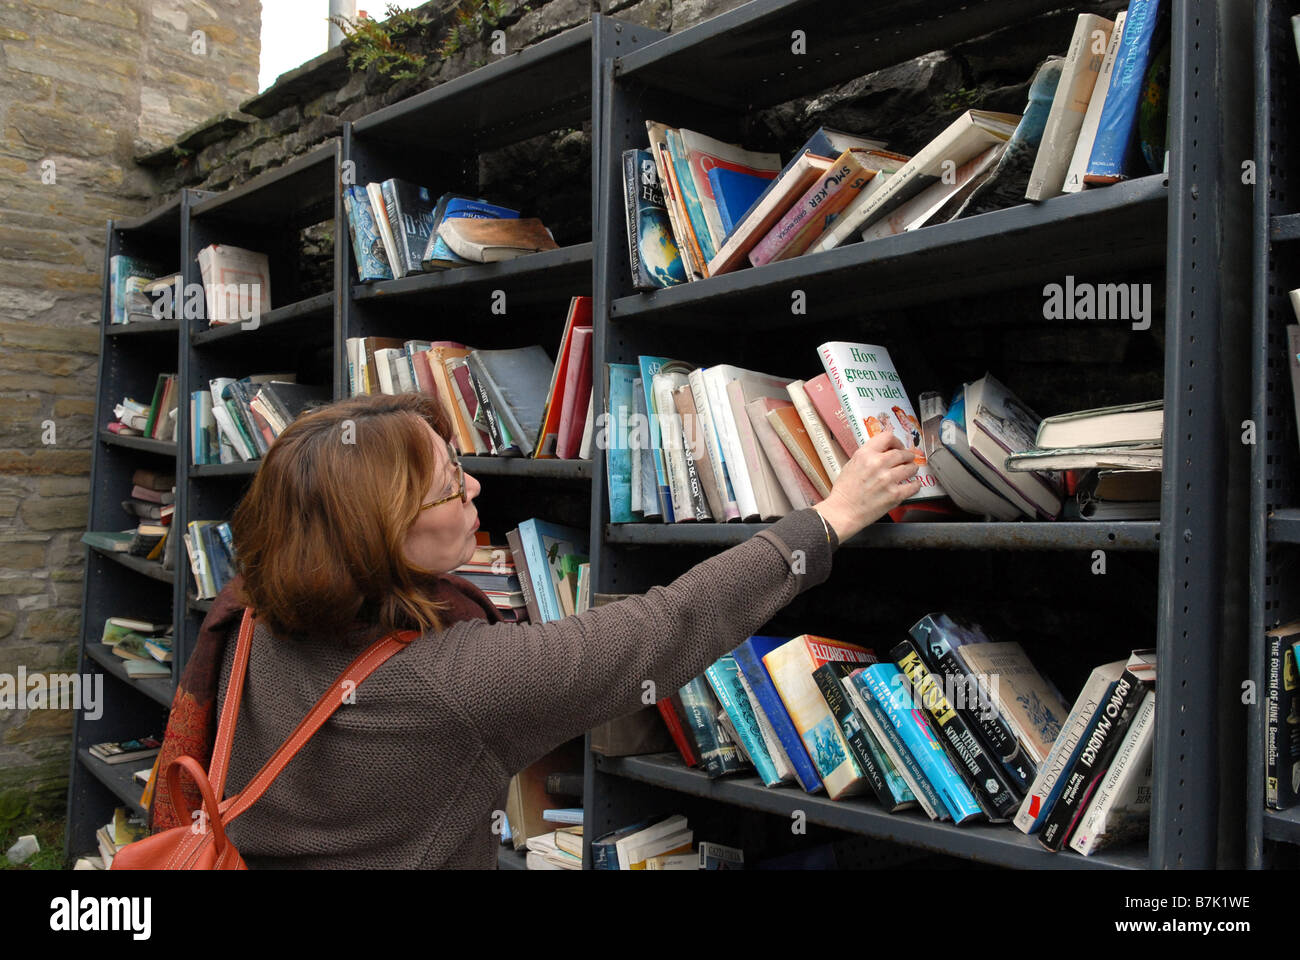 The Honesty Book Shop in Hay on Wye Herefordshire - Stock Image